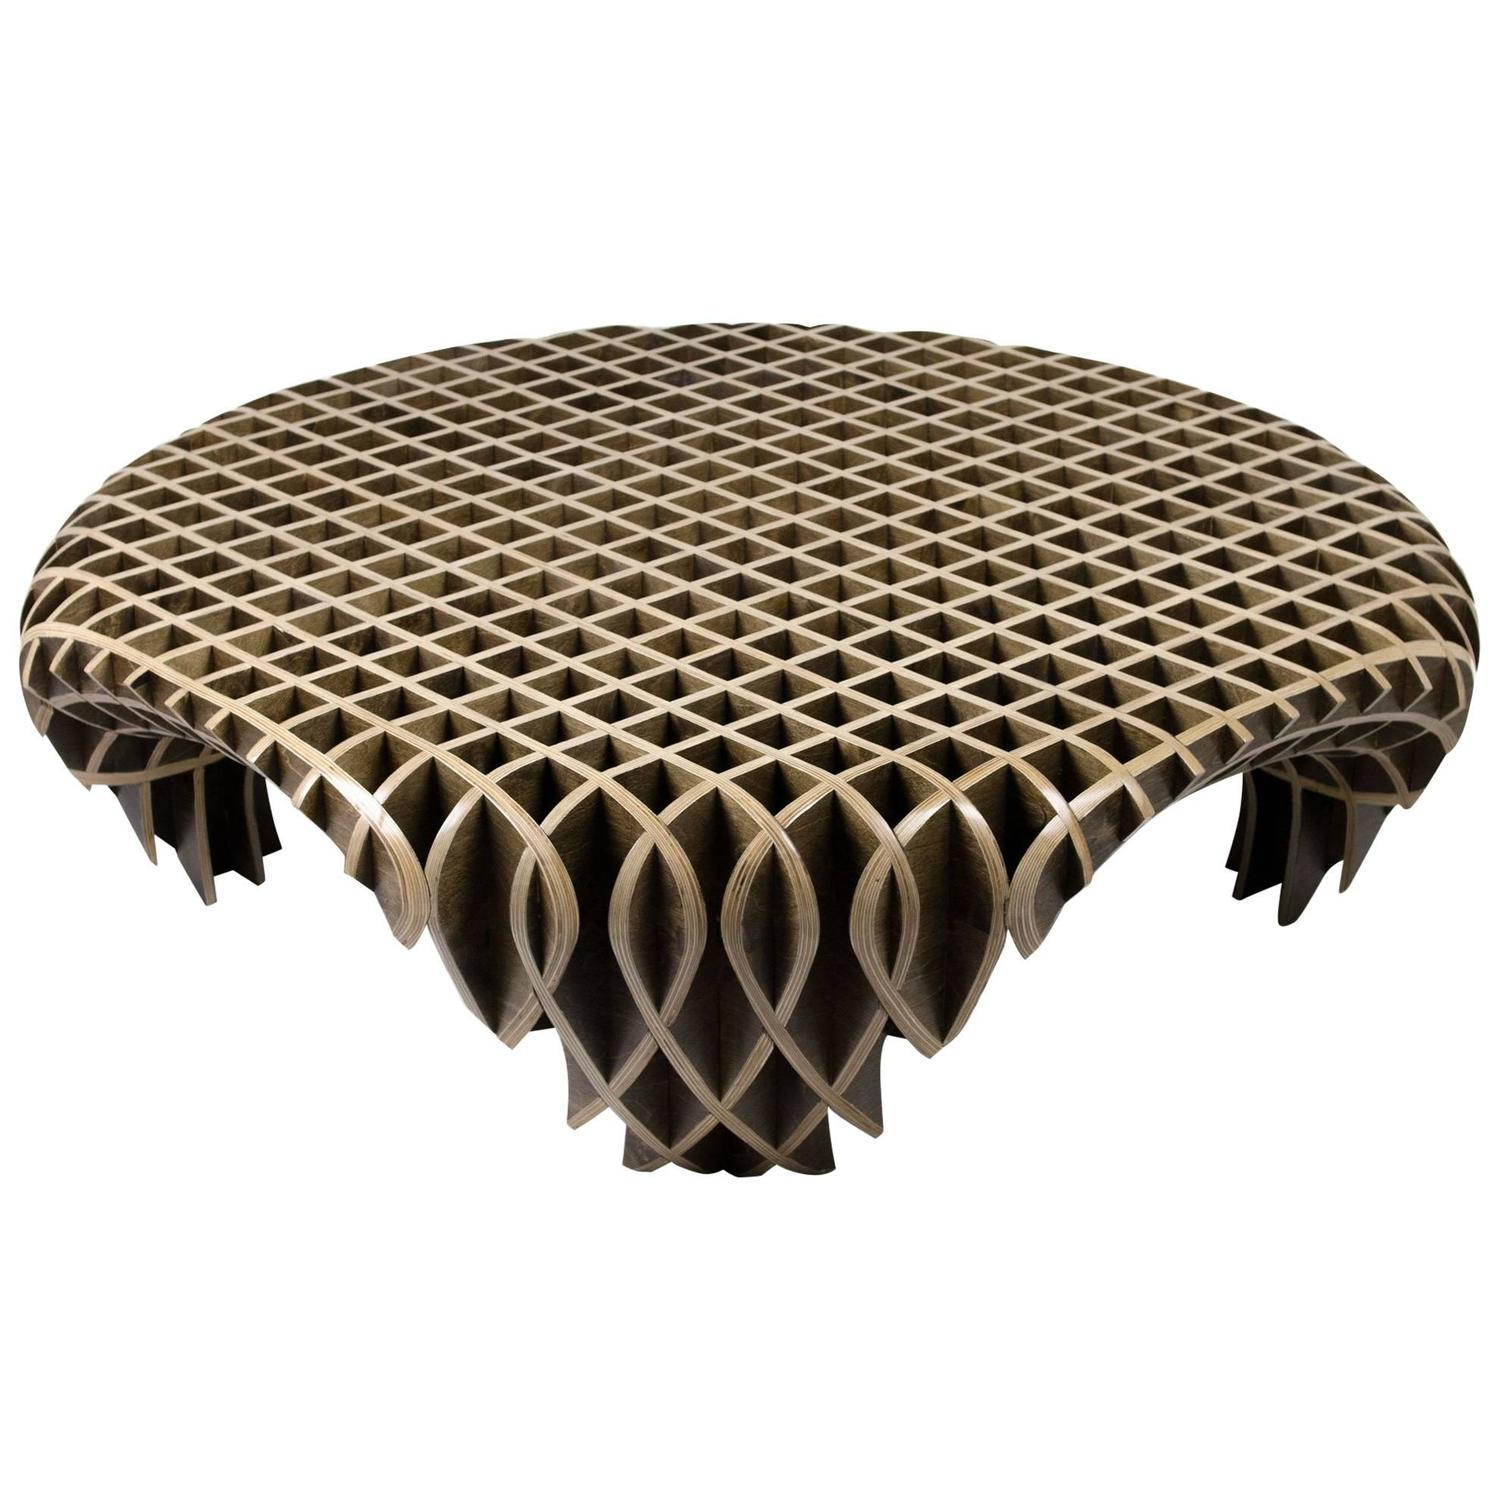 "DNA"" Coffee Table by Studio Superego Italy at 1stdibs"